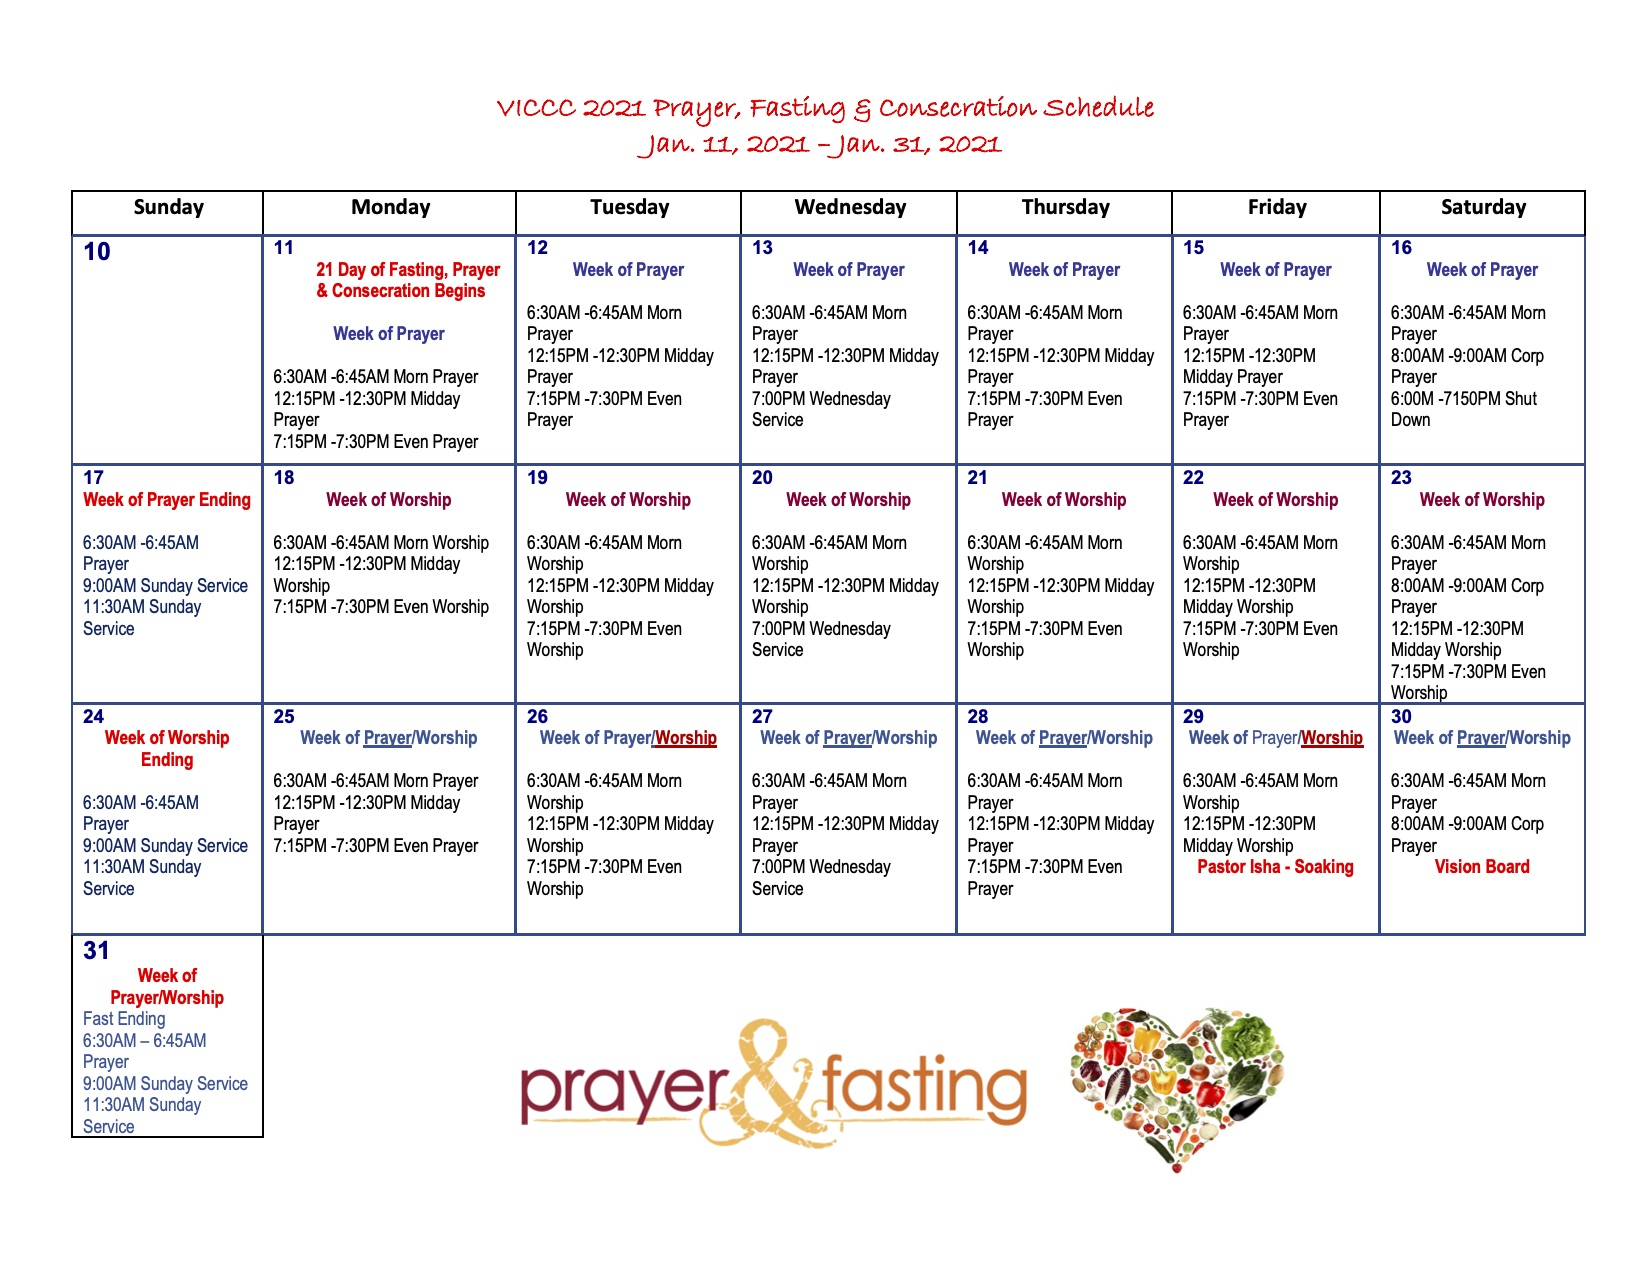 VICCC 2021 Prayer Fasting Consecration Schedule 1-11